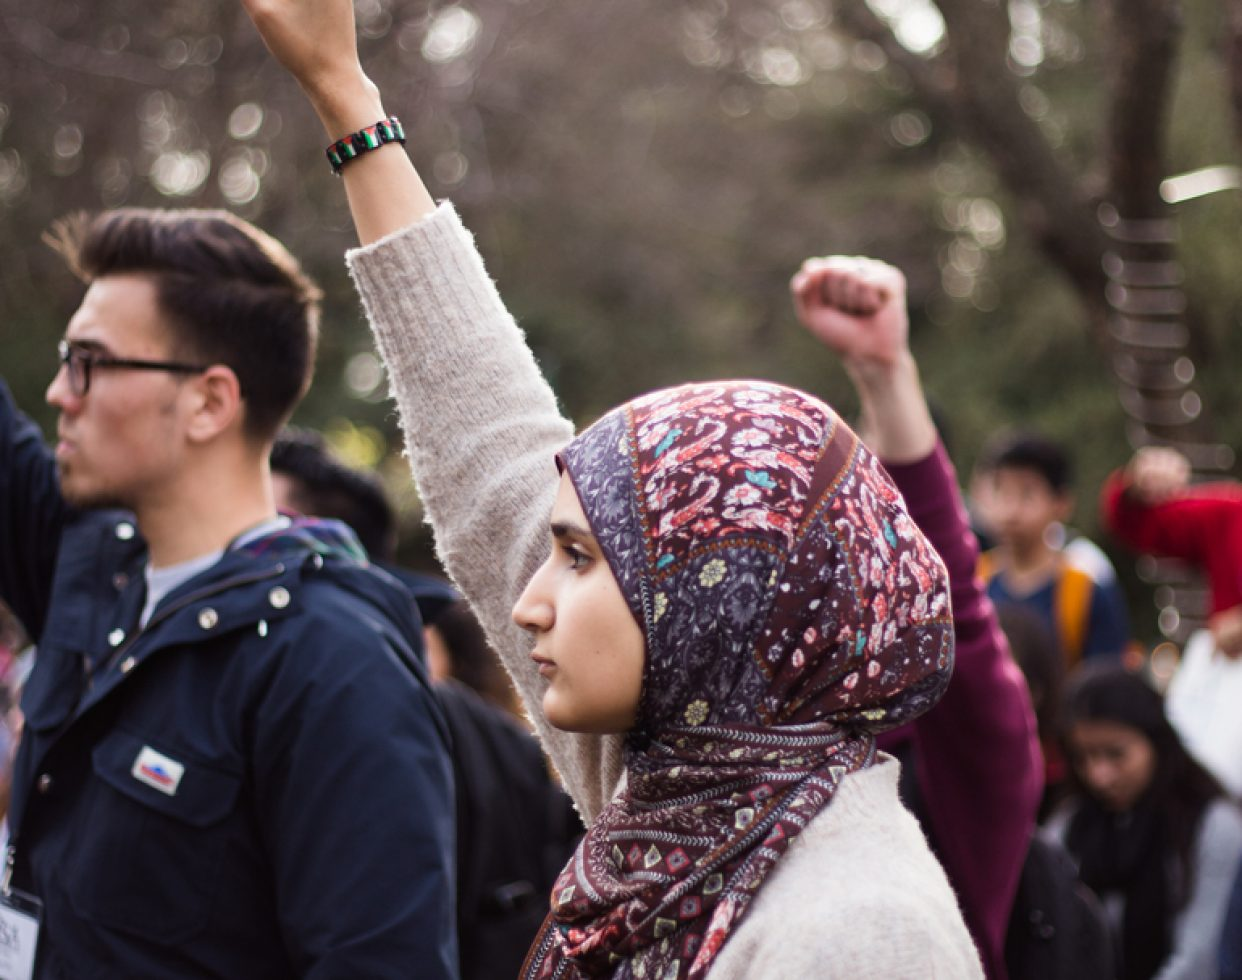 Demonstrators march through the Sacramento State campus during a #NoBanNoWall protest on Feb. 2, 2017. An estimated 300 people attended.